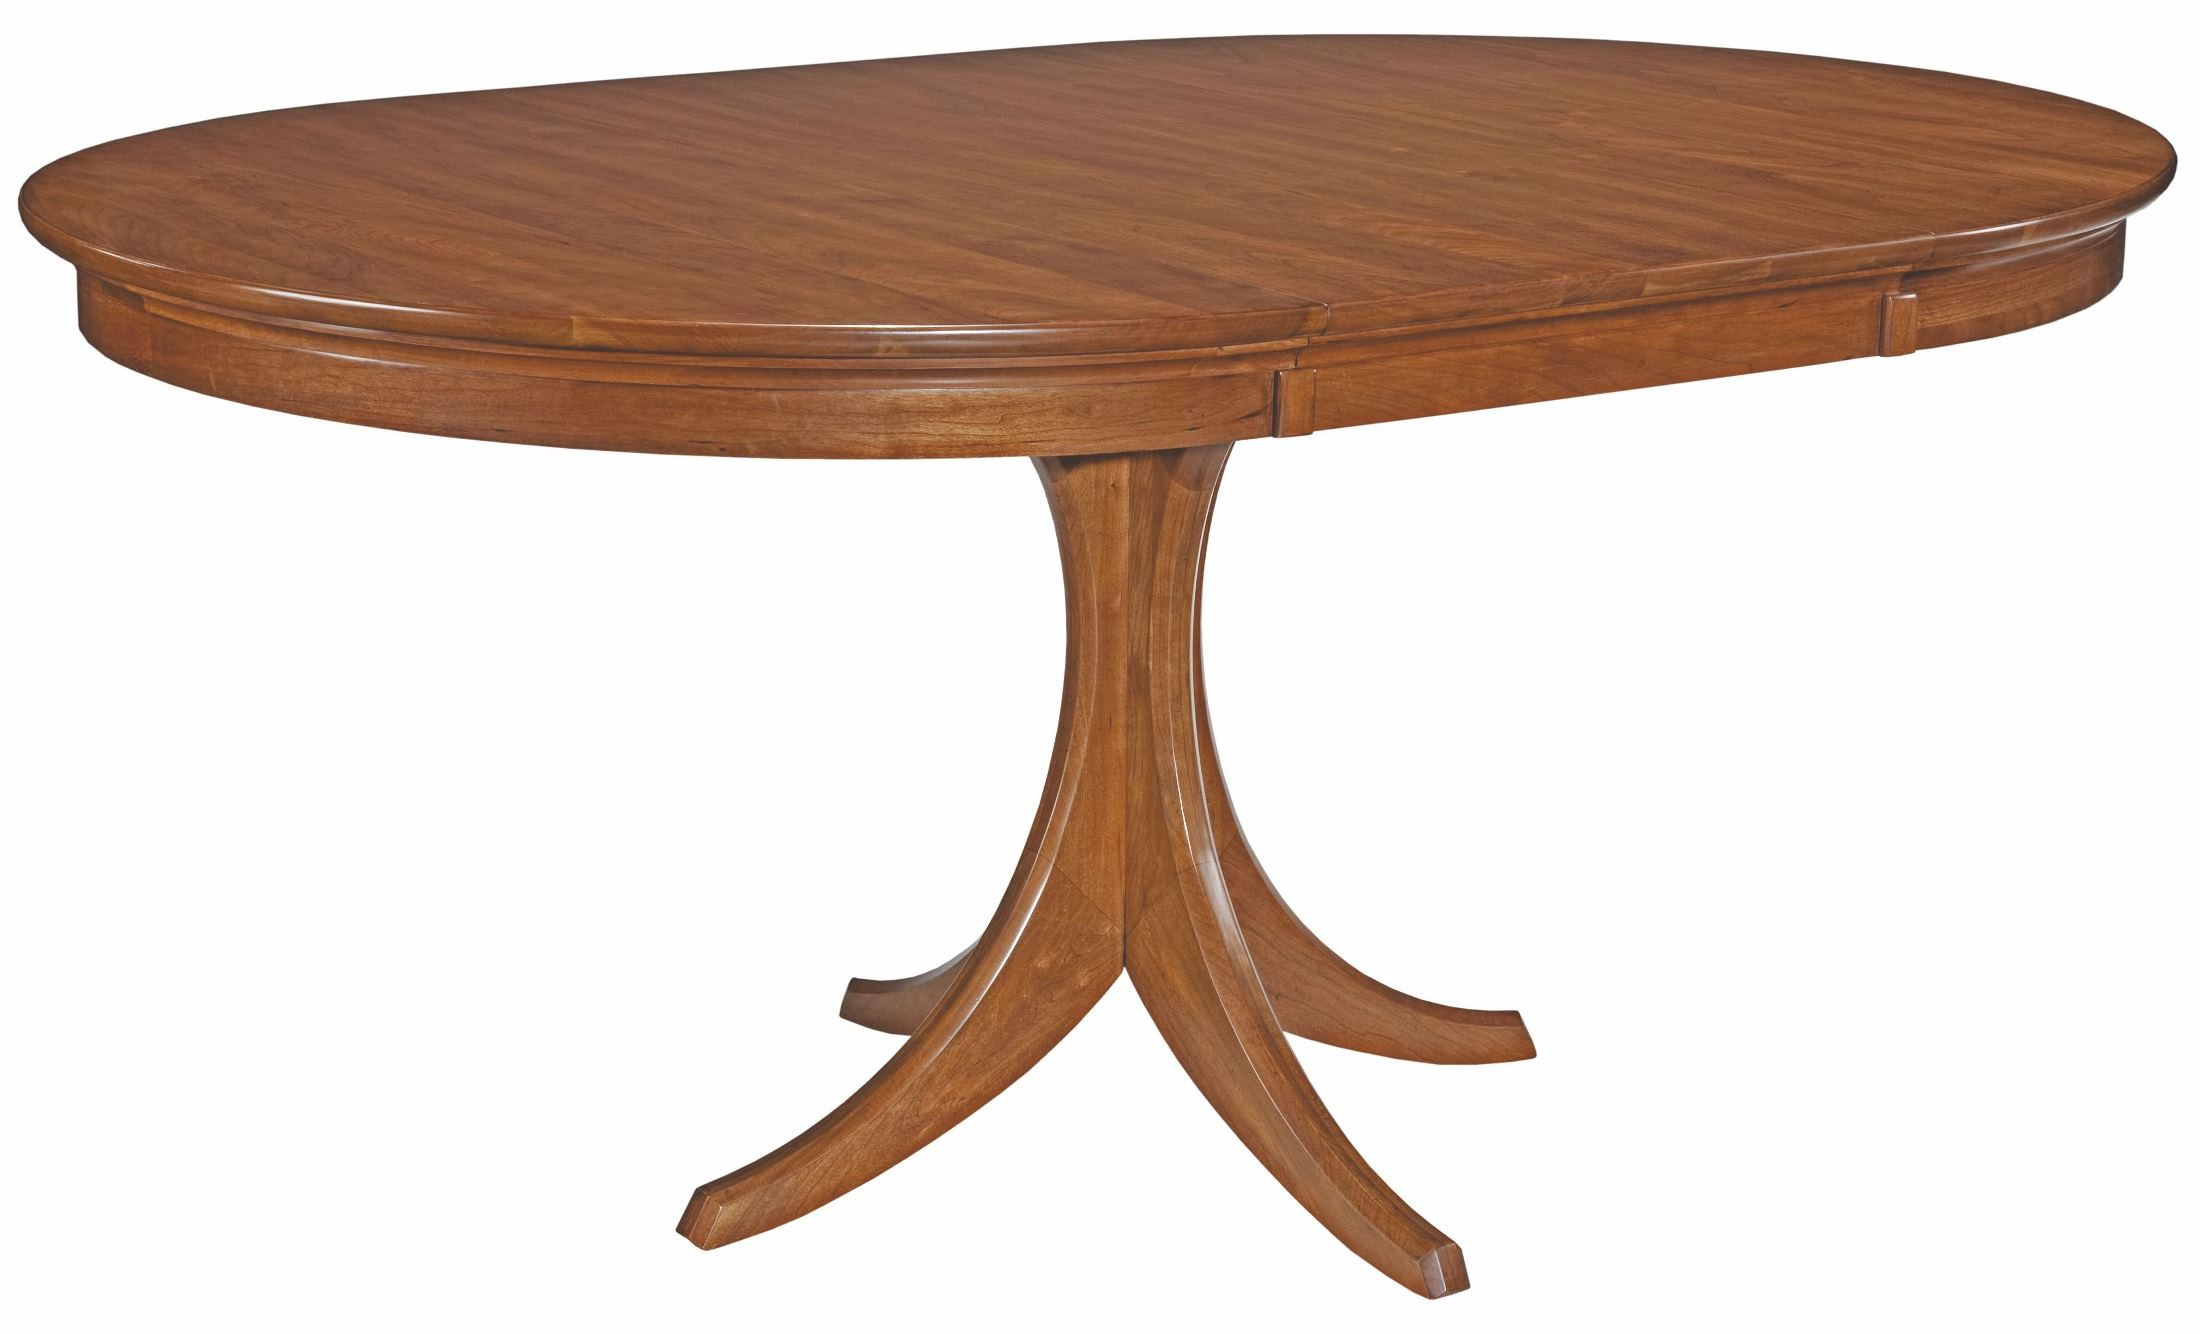 cherry park round dining table from kincaid 63 054p coleman furniture. Black Bedroom Furniture Sets. Home Design Ideas